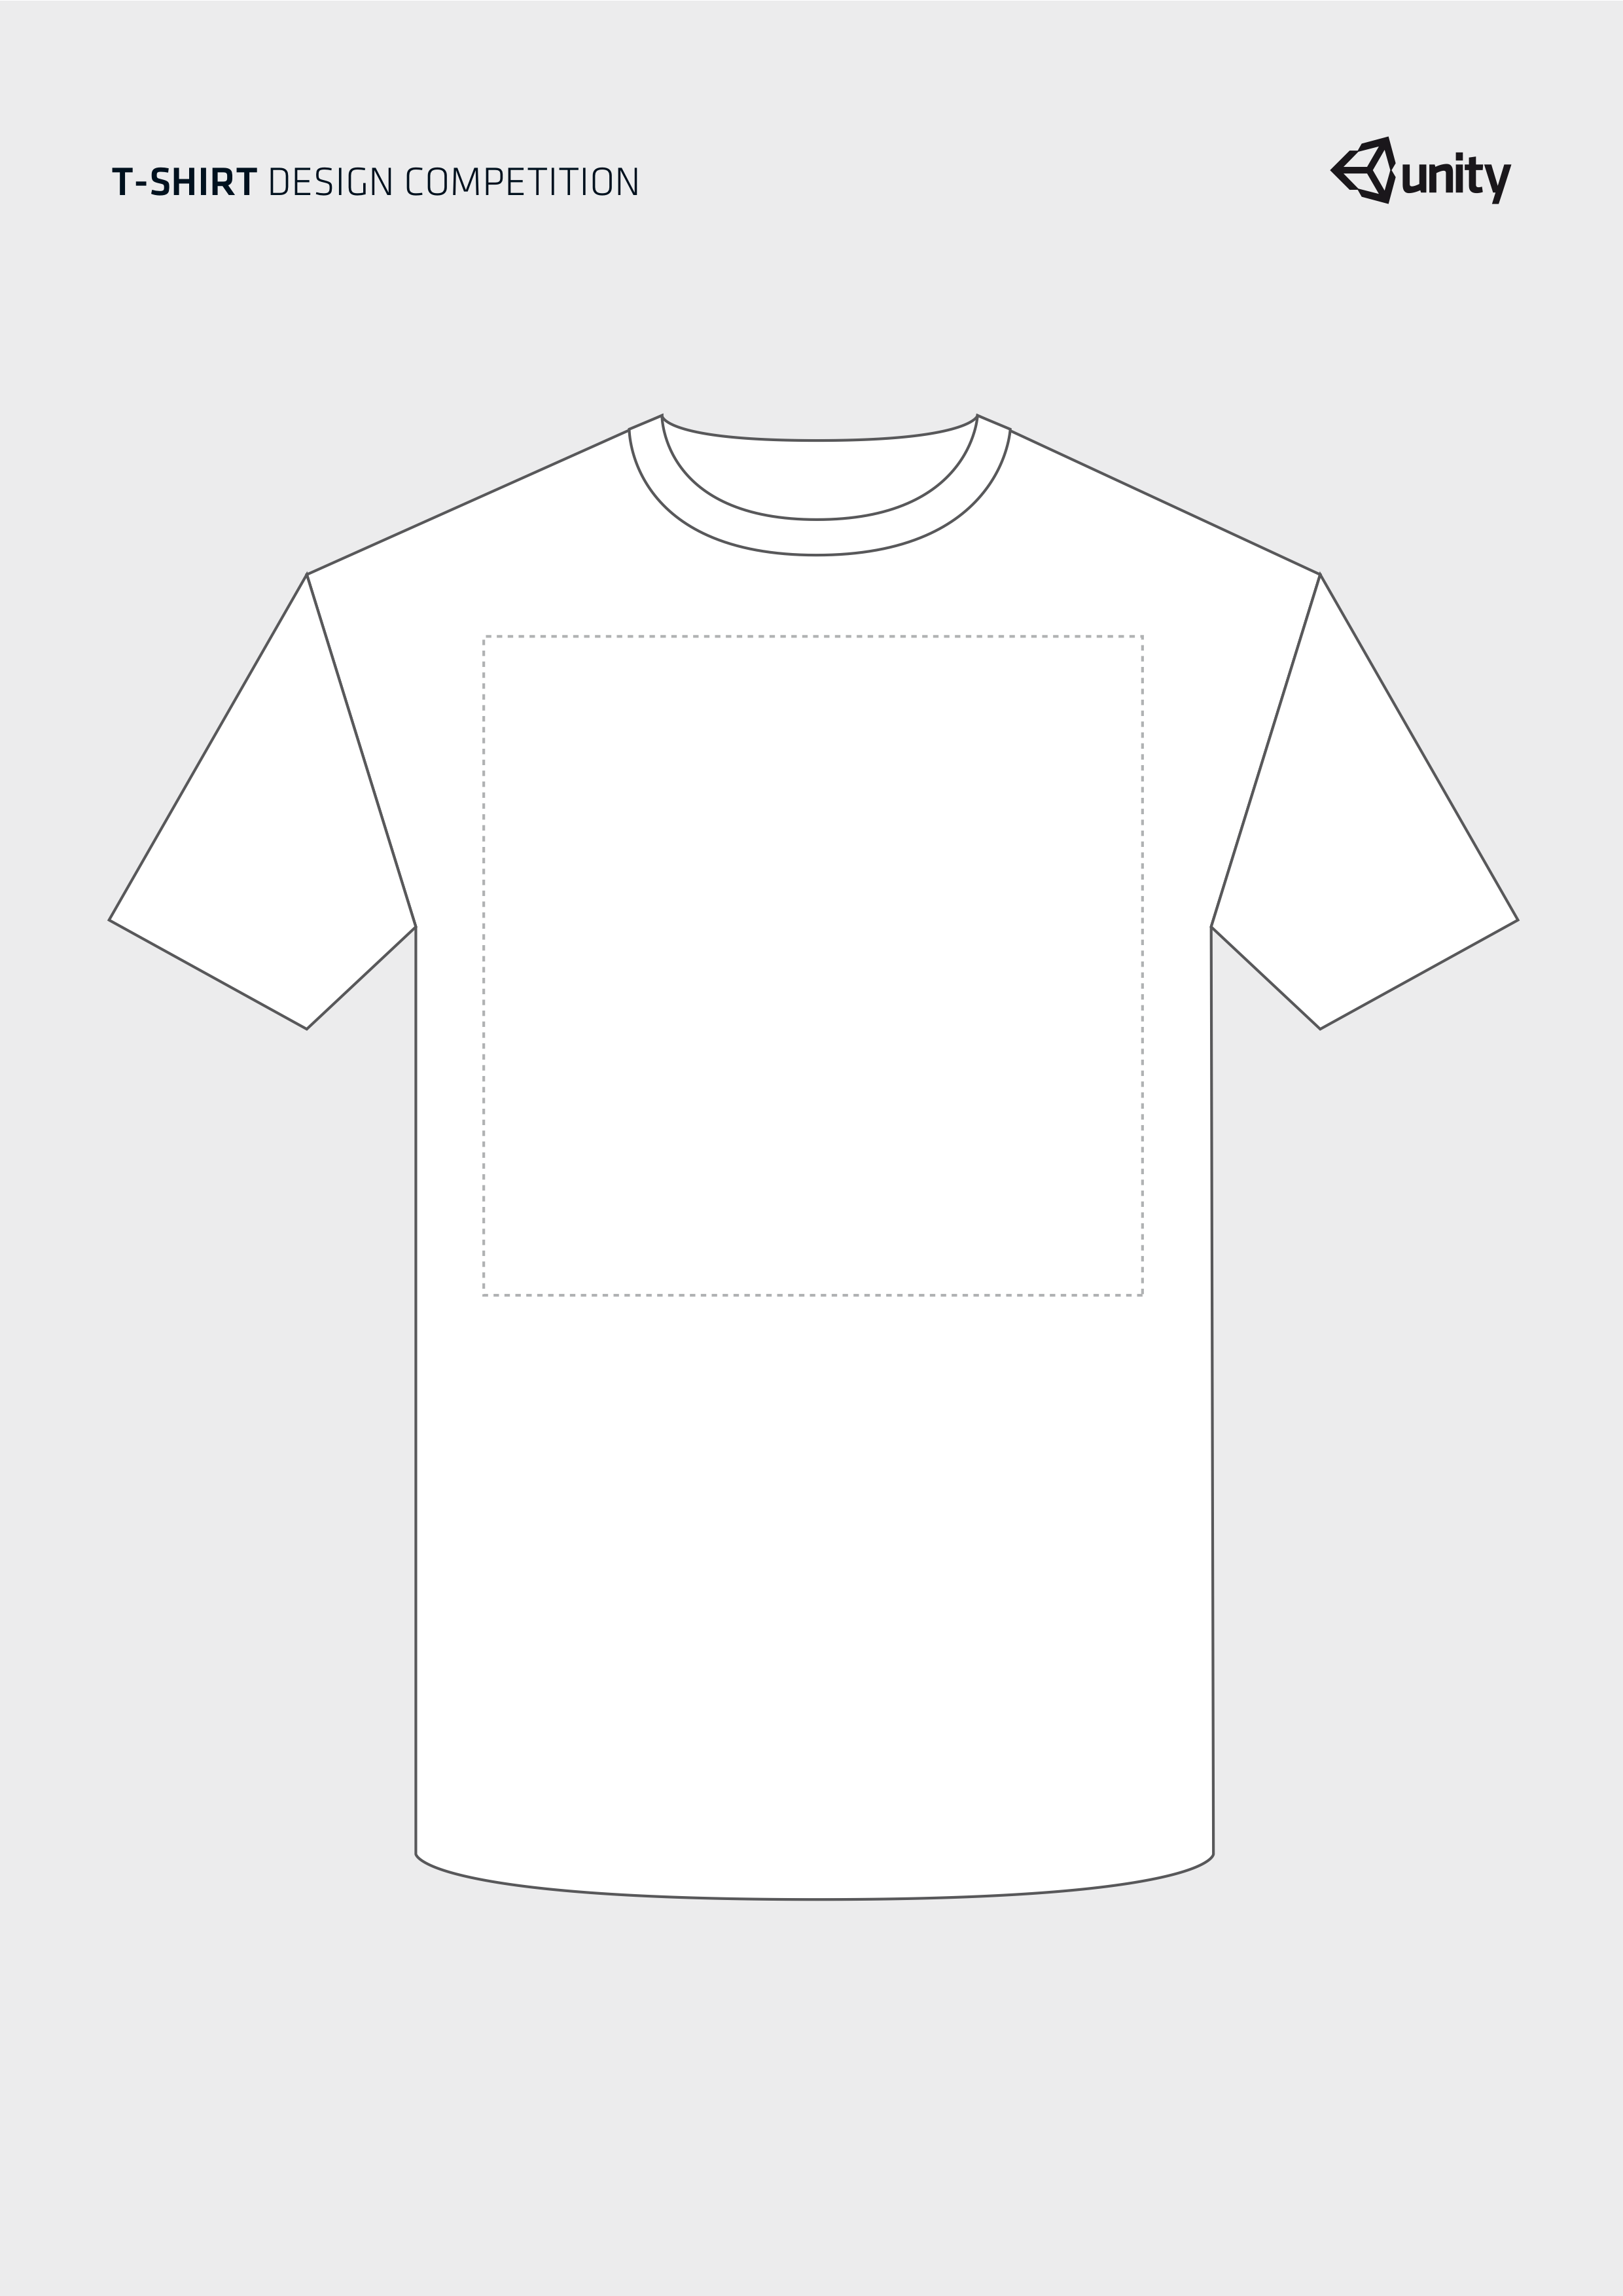 Unity terms and conditions t shirt design contest t shirt template pronofoot35fo Gallery